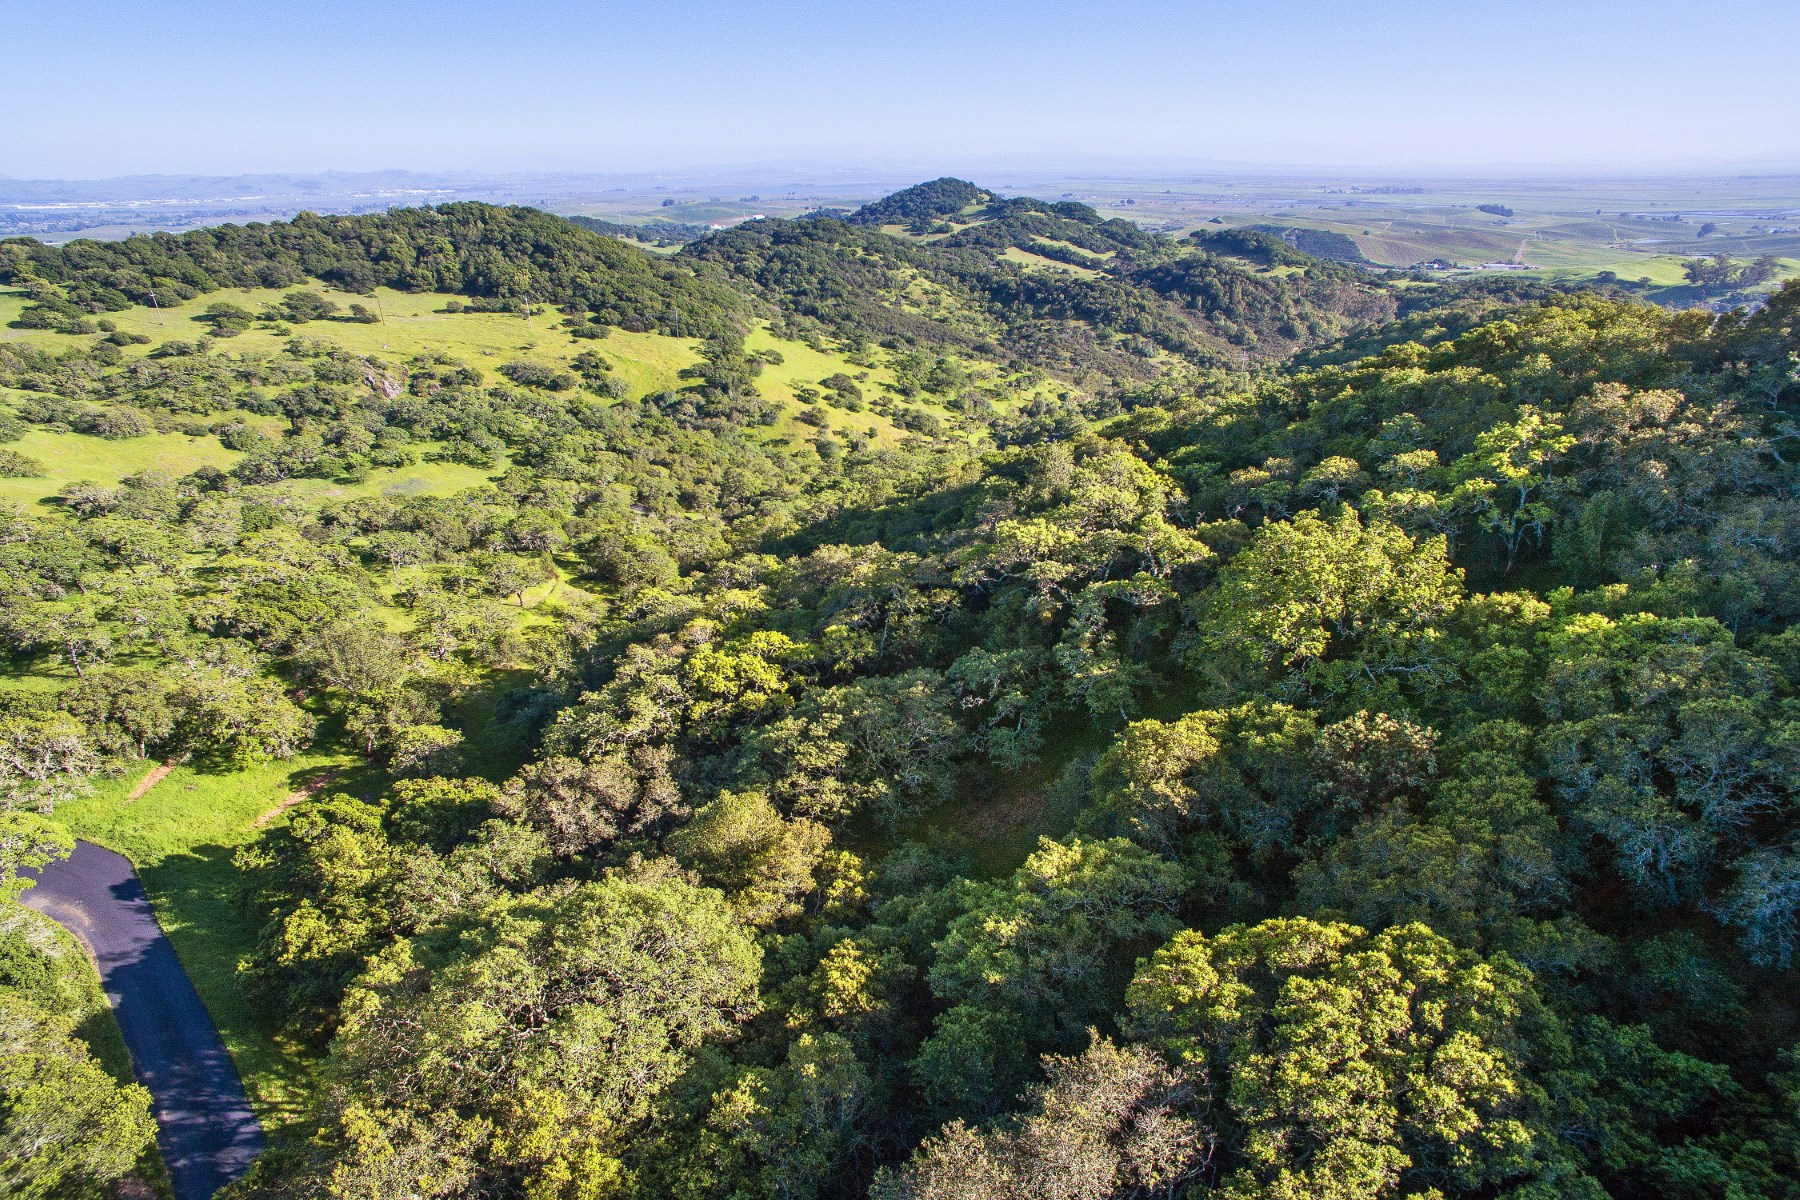 Single Family Home for Sale at Over 10 Acres of Exceptional Level Land 19292 Arrowhead Mountain Rd. Sonoma, California 95476 United States